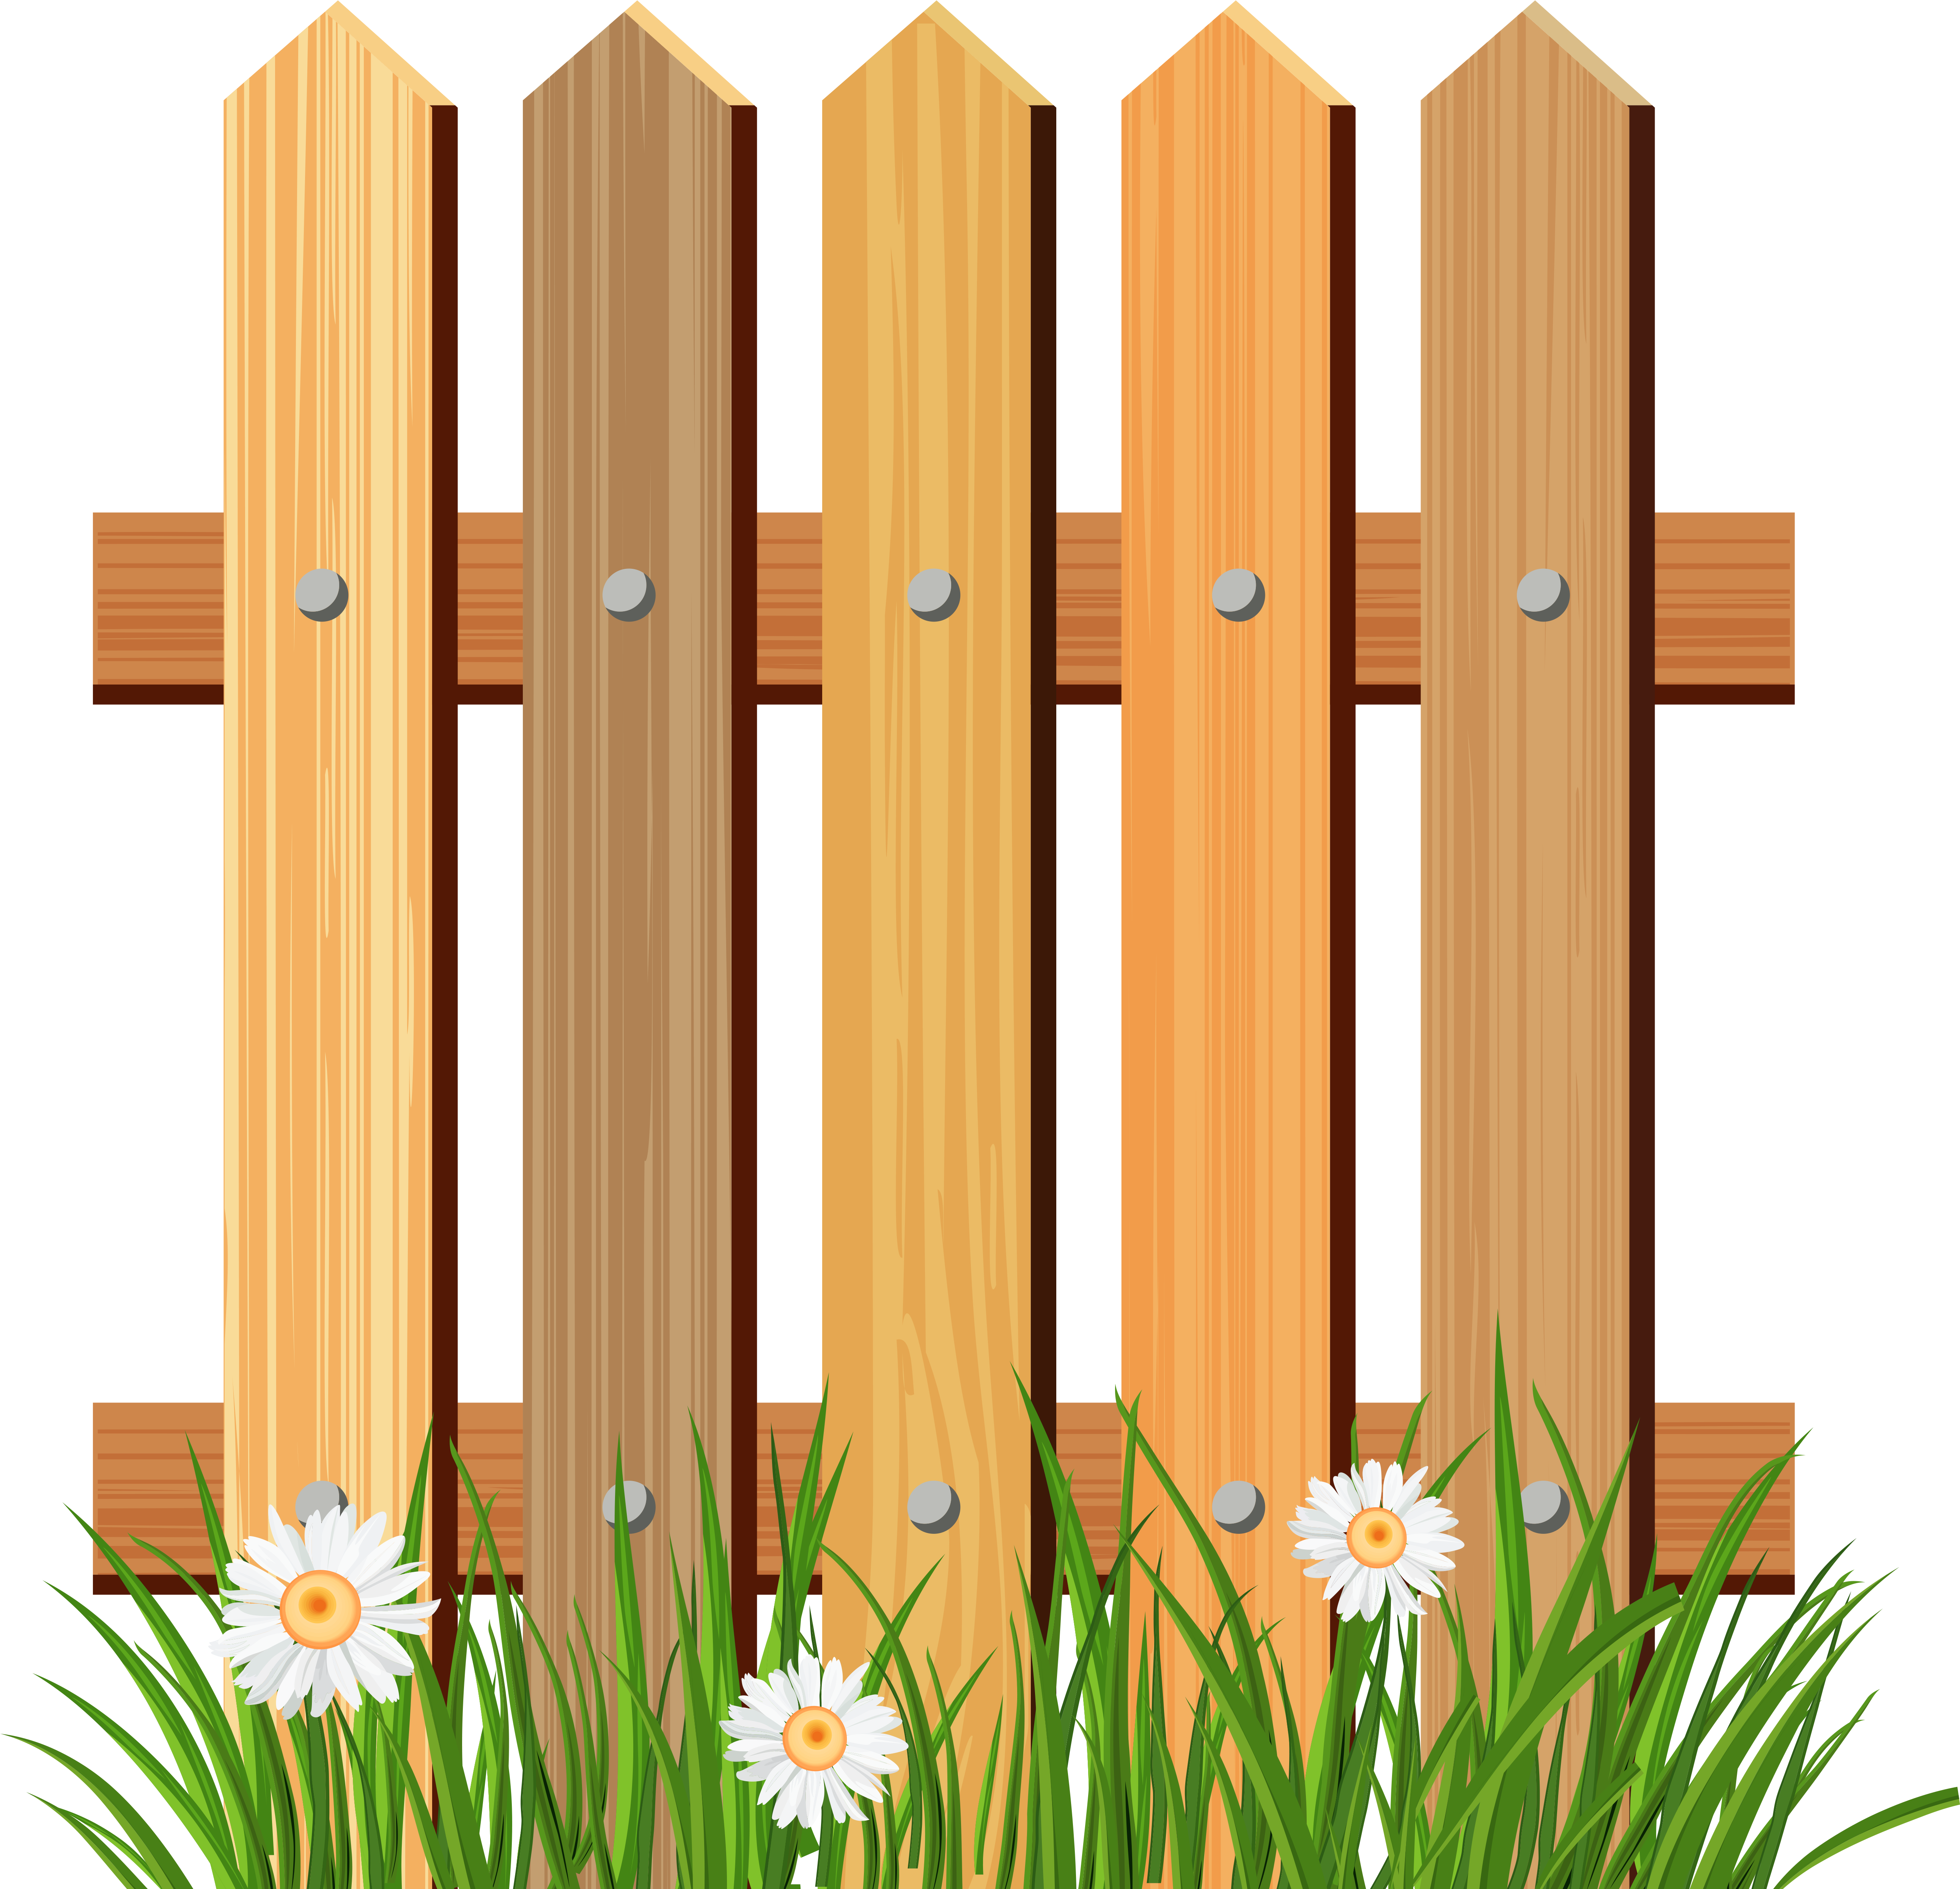 Grass Png Wood Fence Clipart Png.